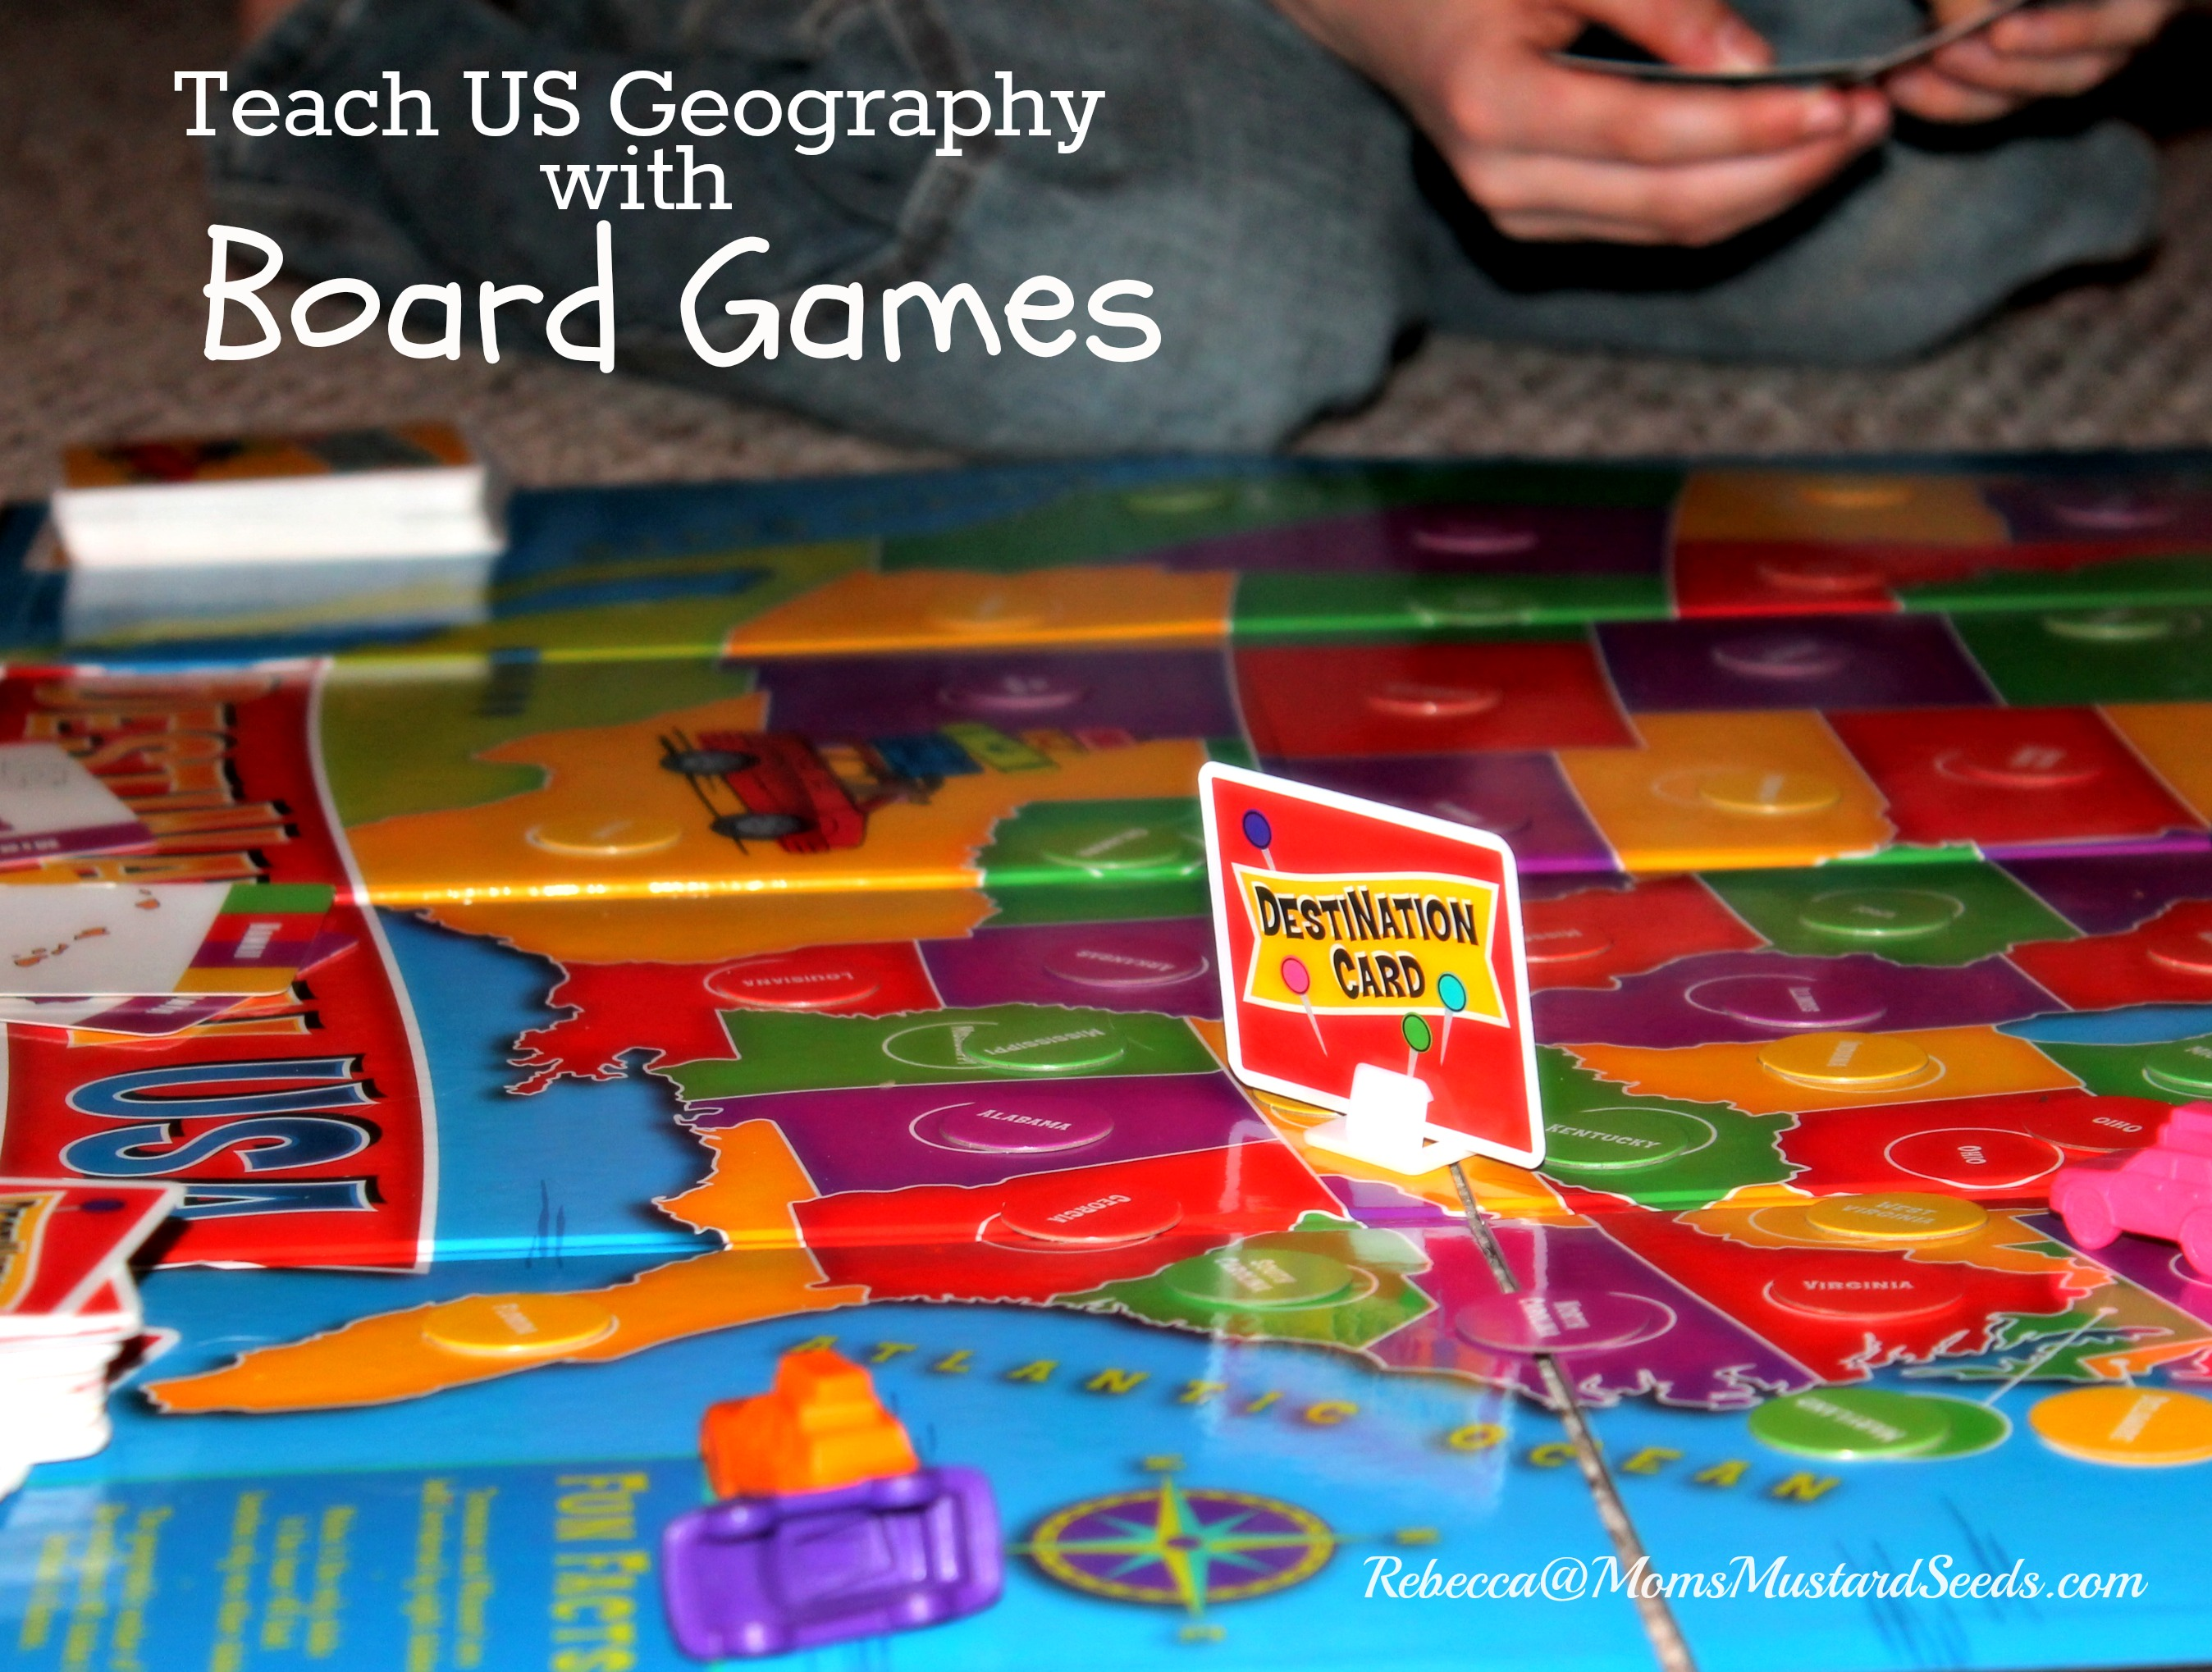 Teach US Geography with a Board Game